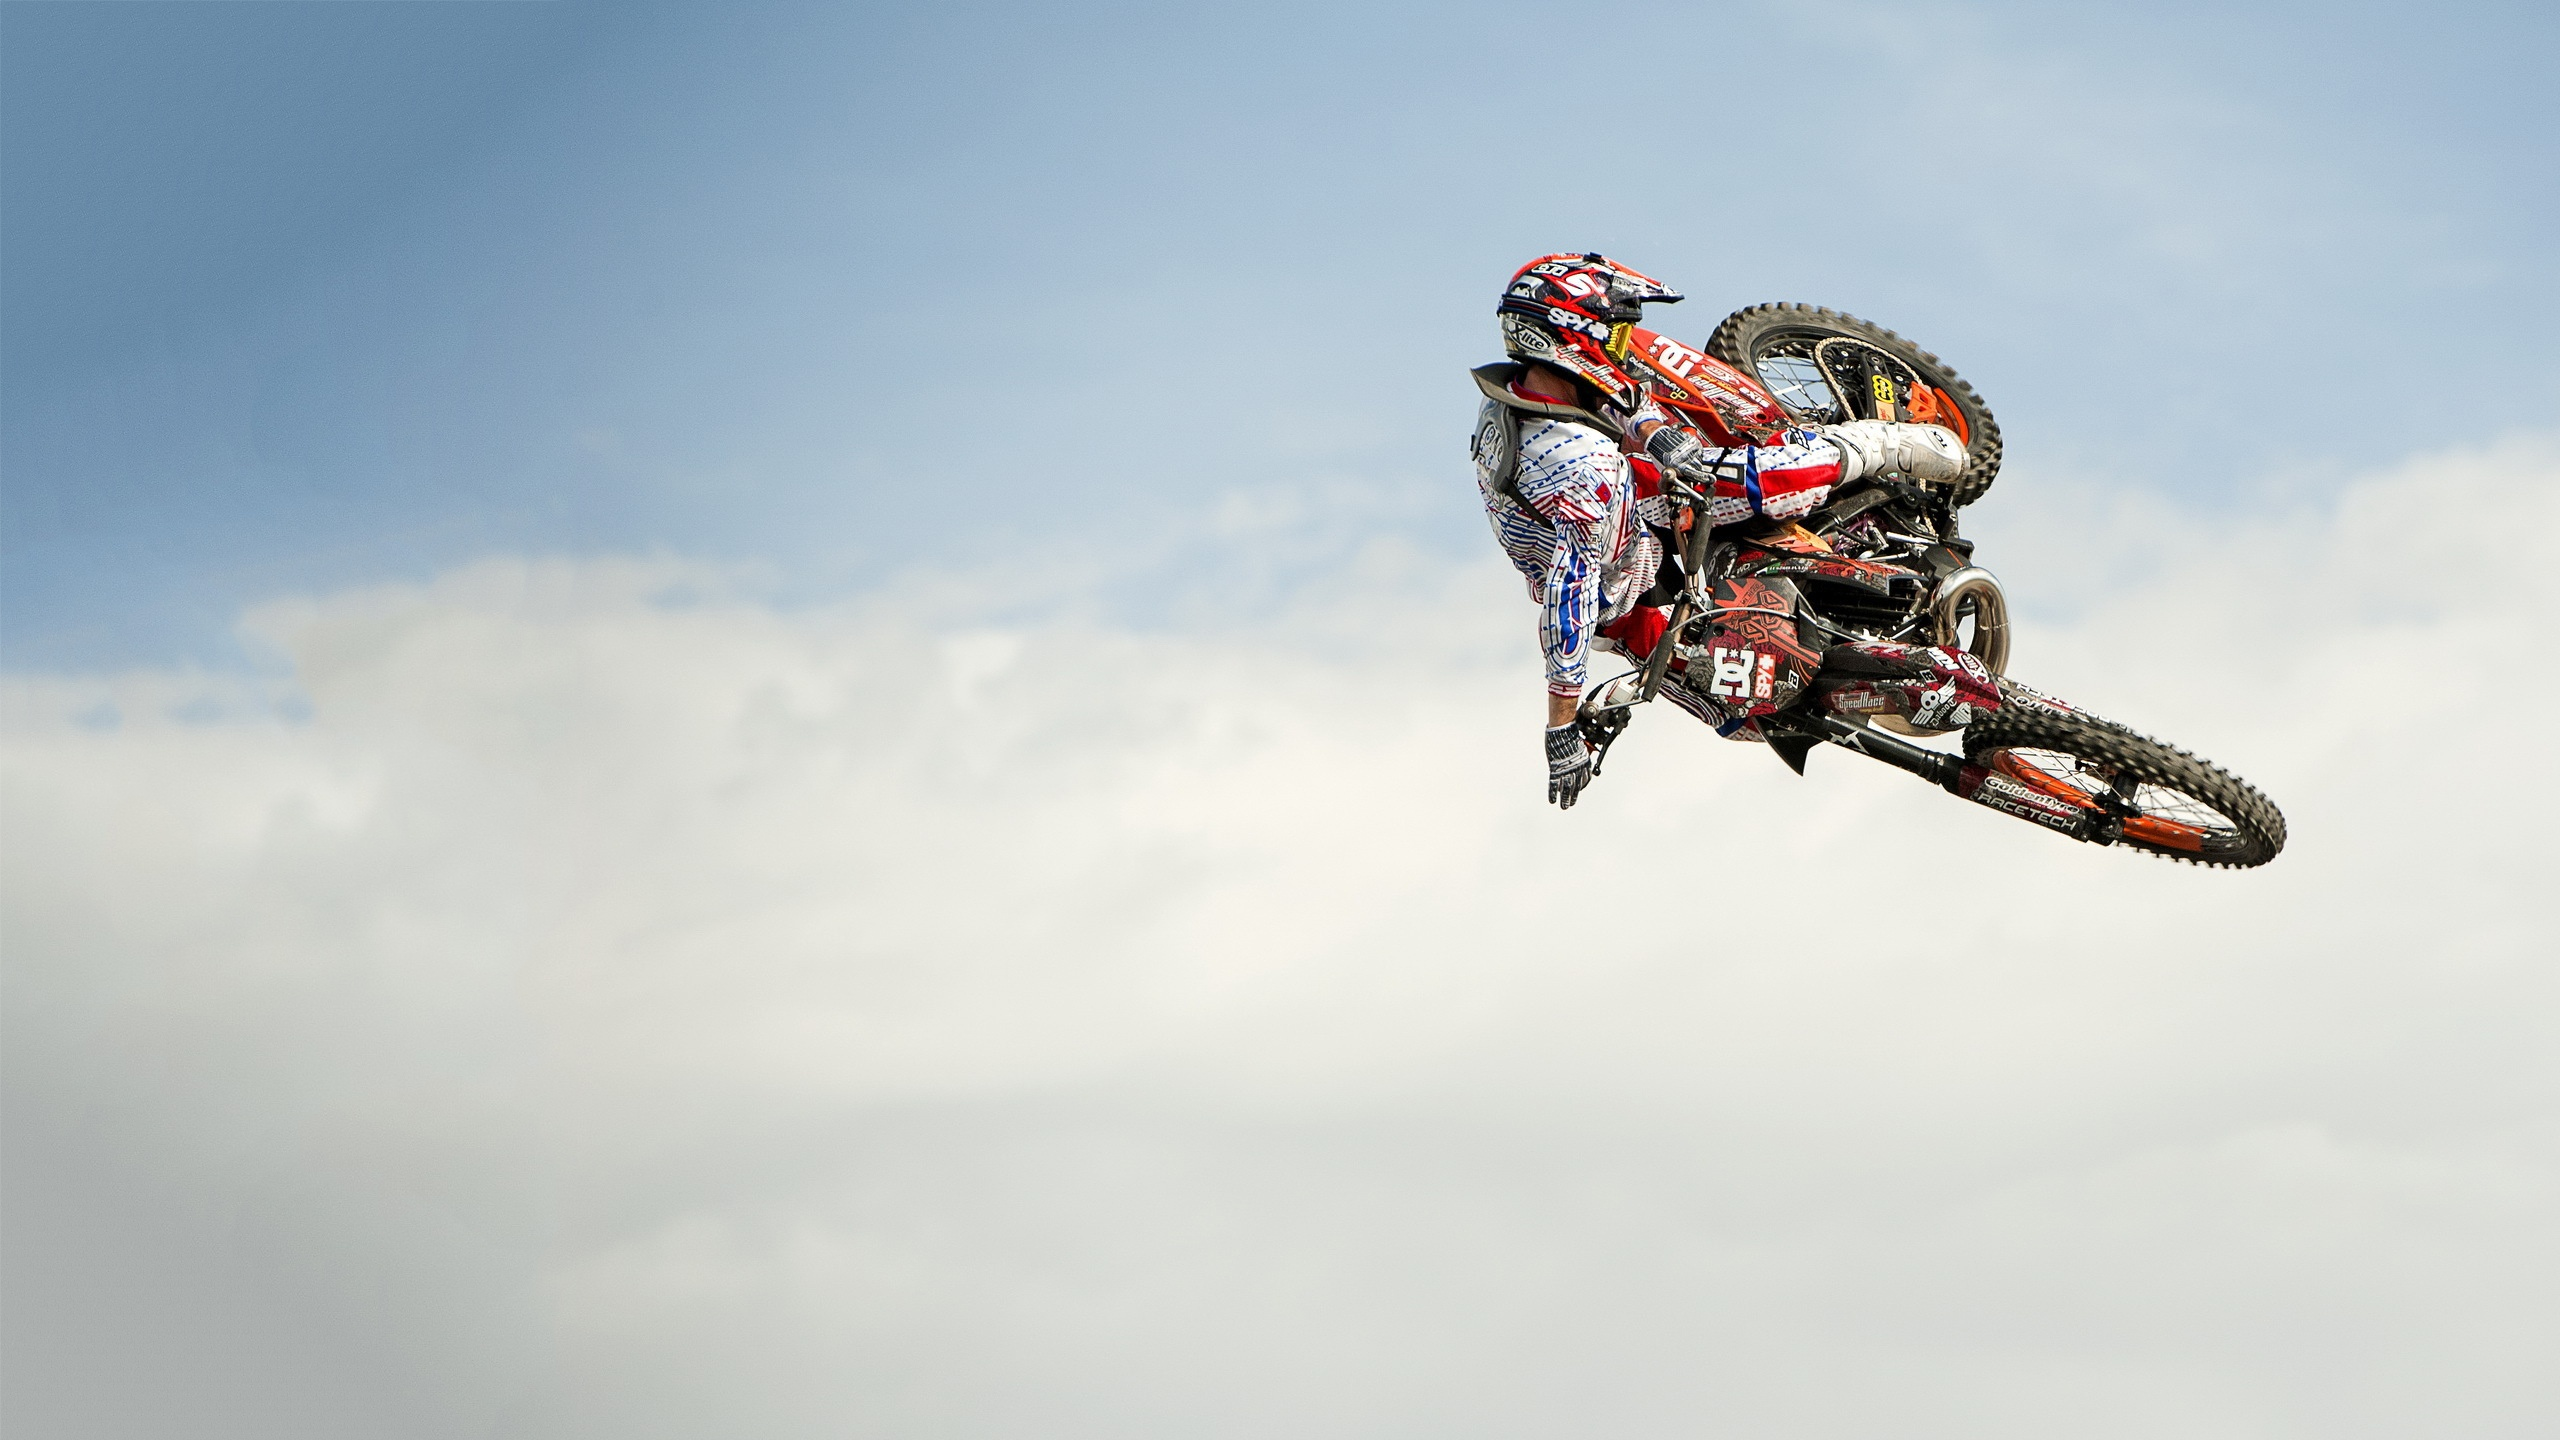 Moto X Wallpaper Hd: 10 Awesome HD Motocross Wallpapers